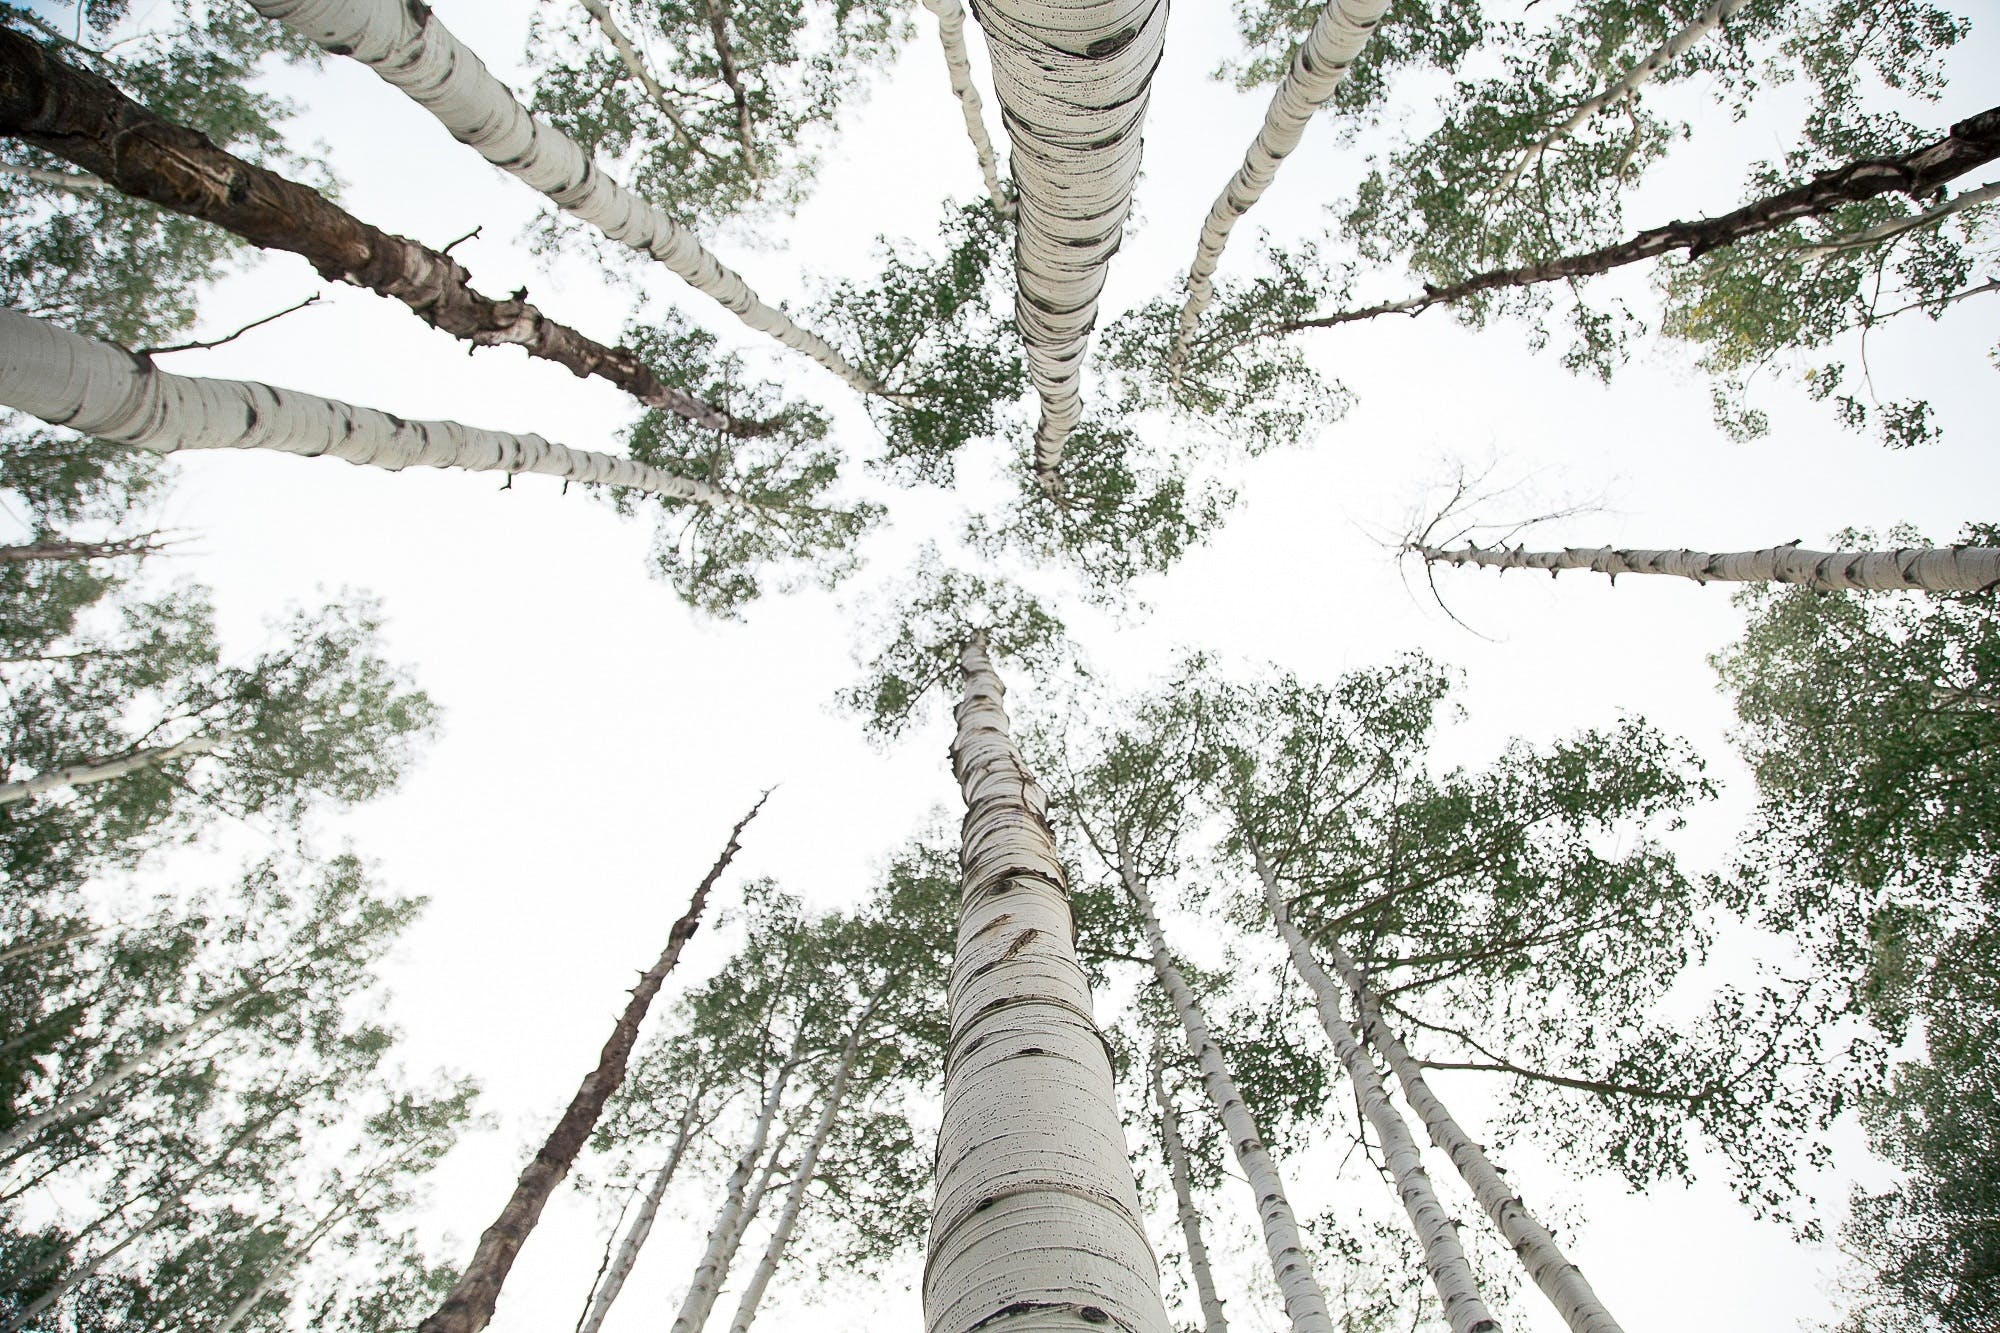 Free stock photo of sky, forest, trees, leaves